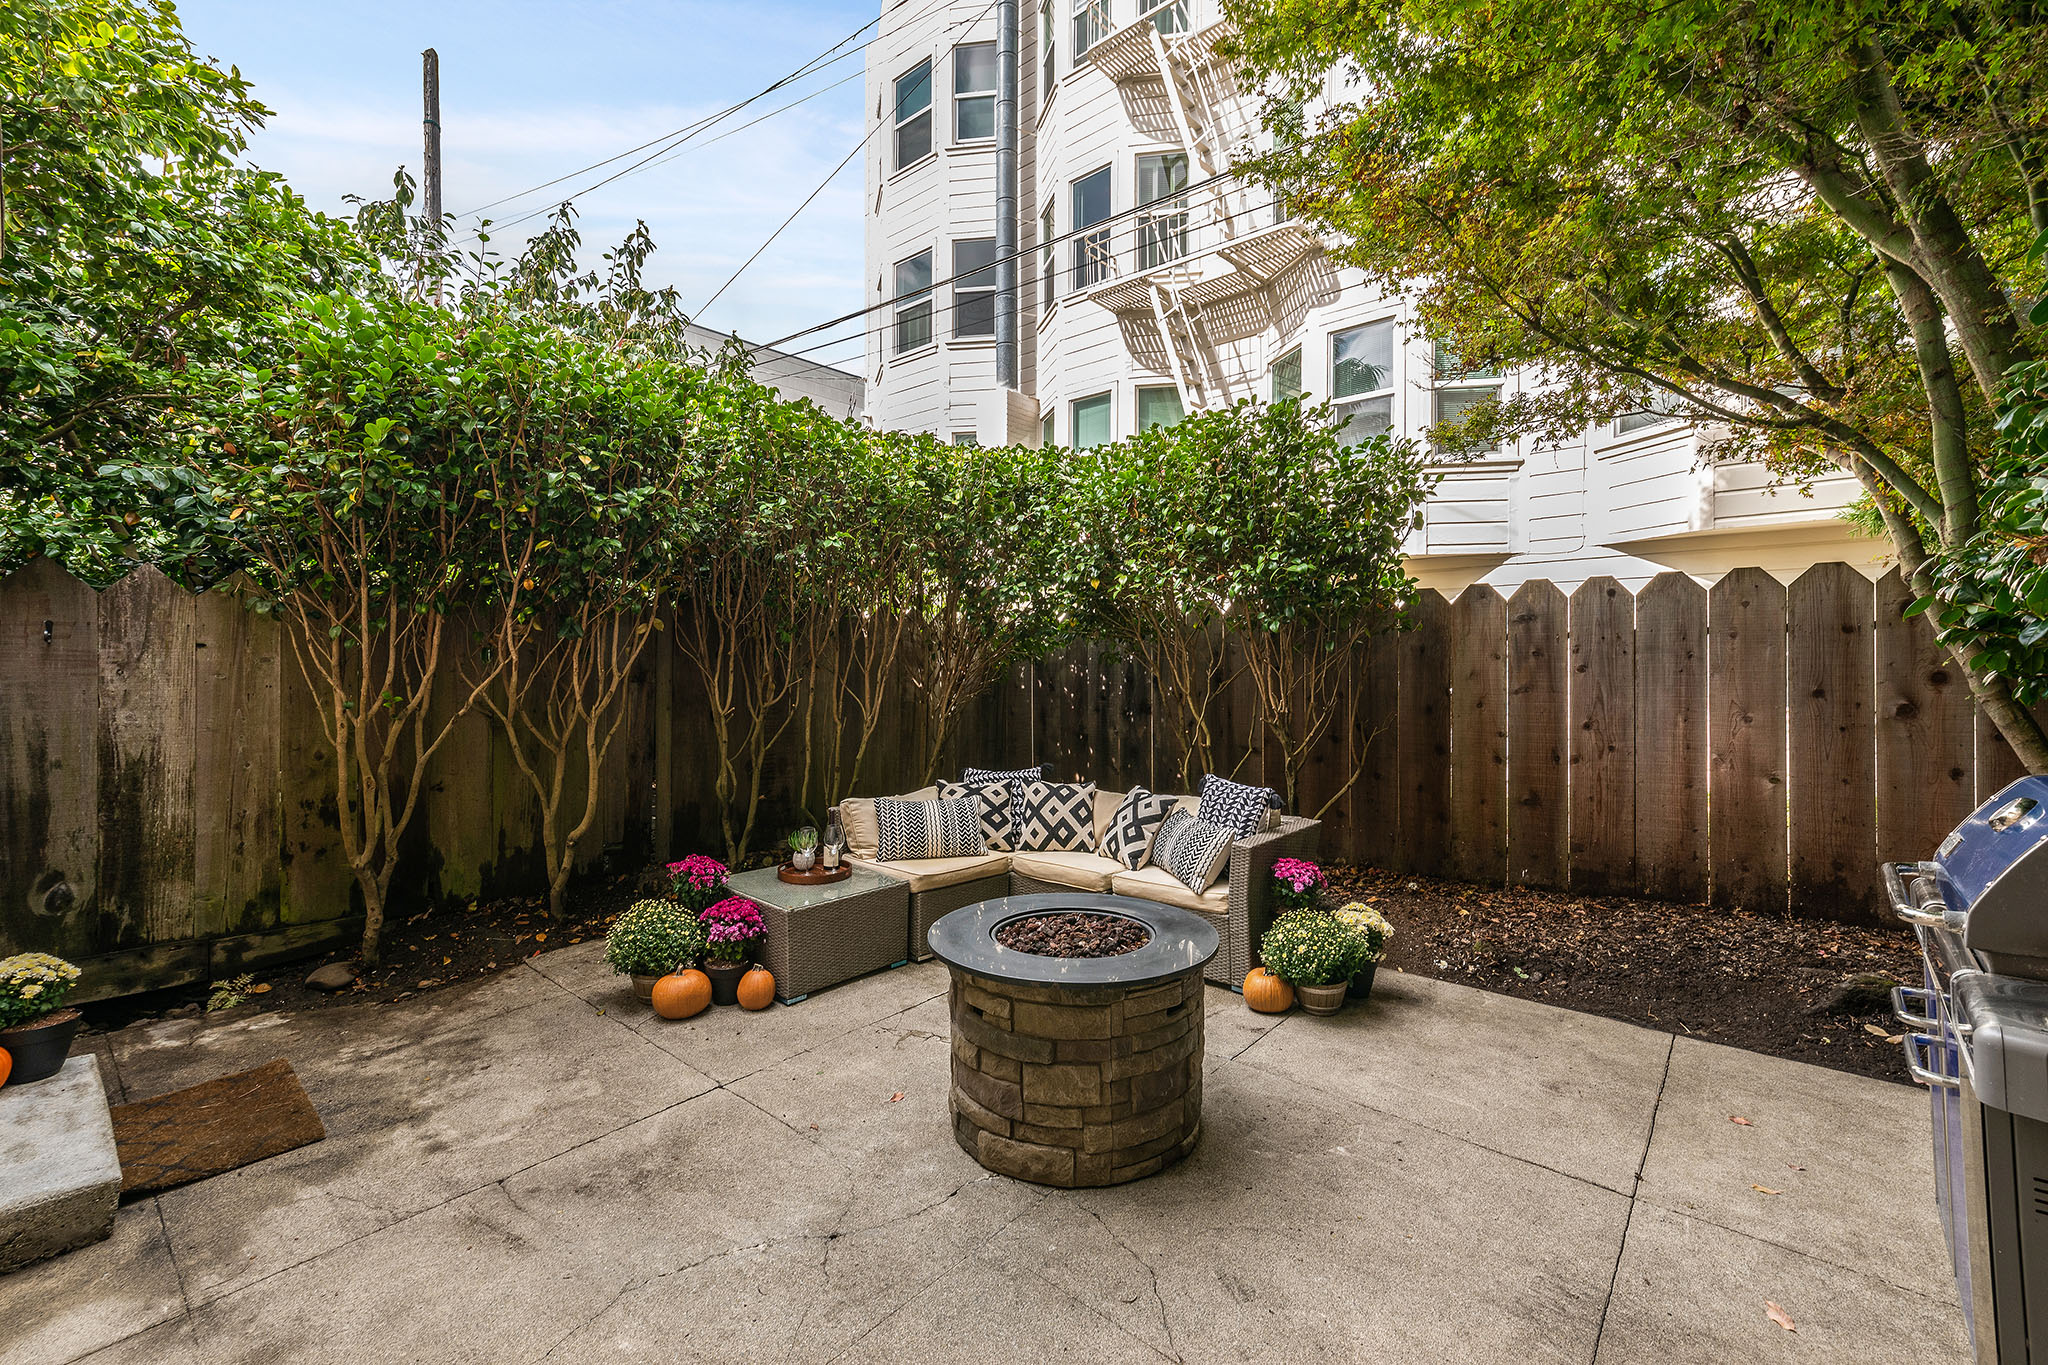 outdoor patio view - greenery and firepit